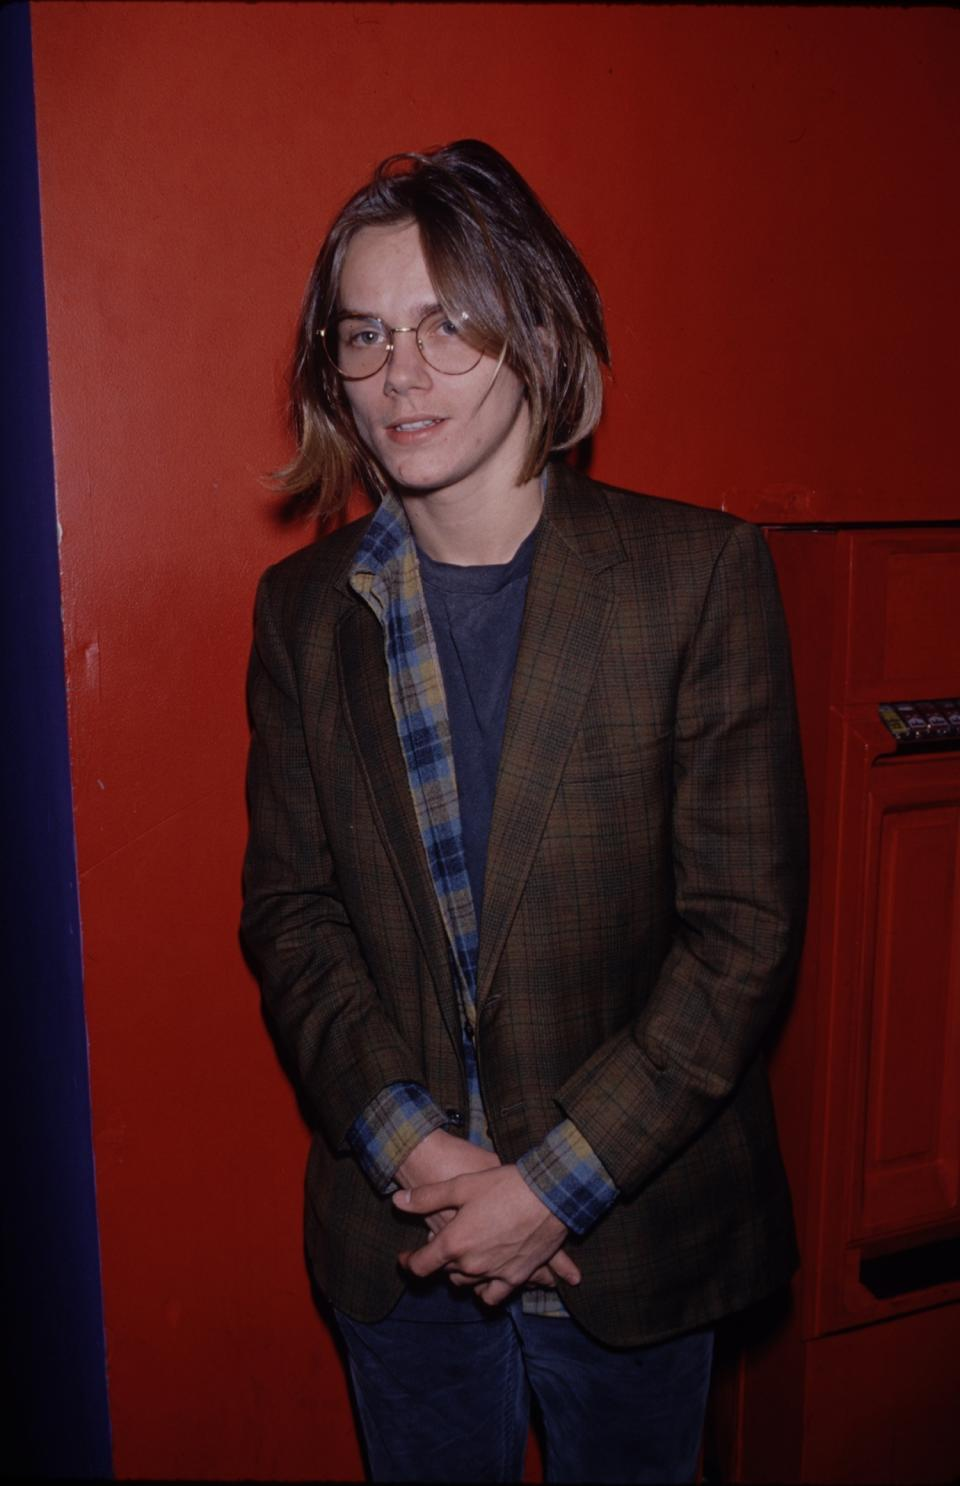 American actor River Phoenix attends an Rock Against Fur event, February 1989. (Photo by The LIFE Picture Collection via Getty Images)